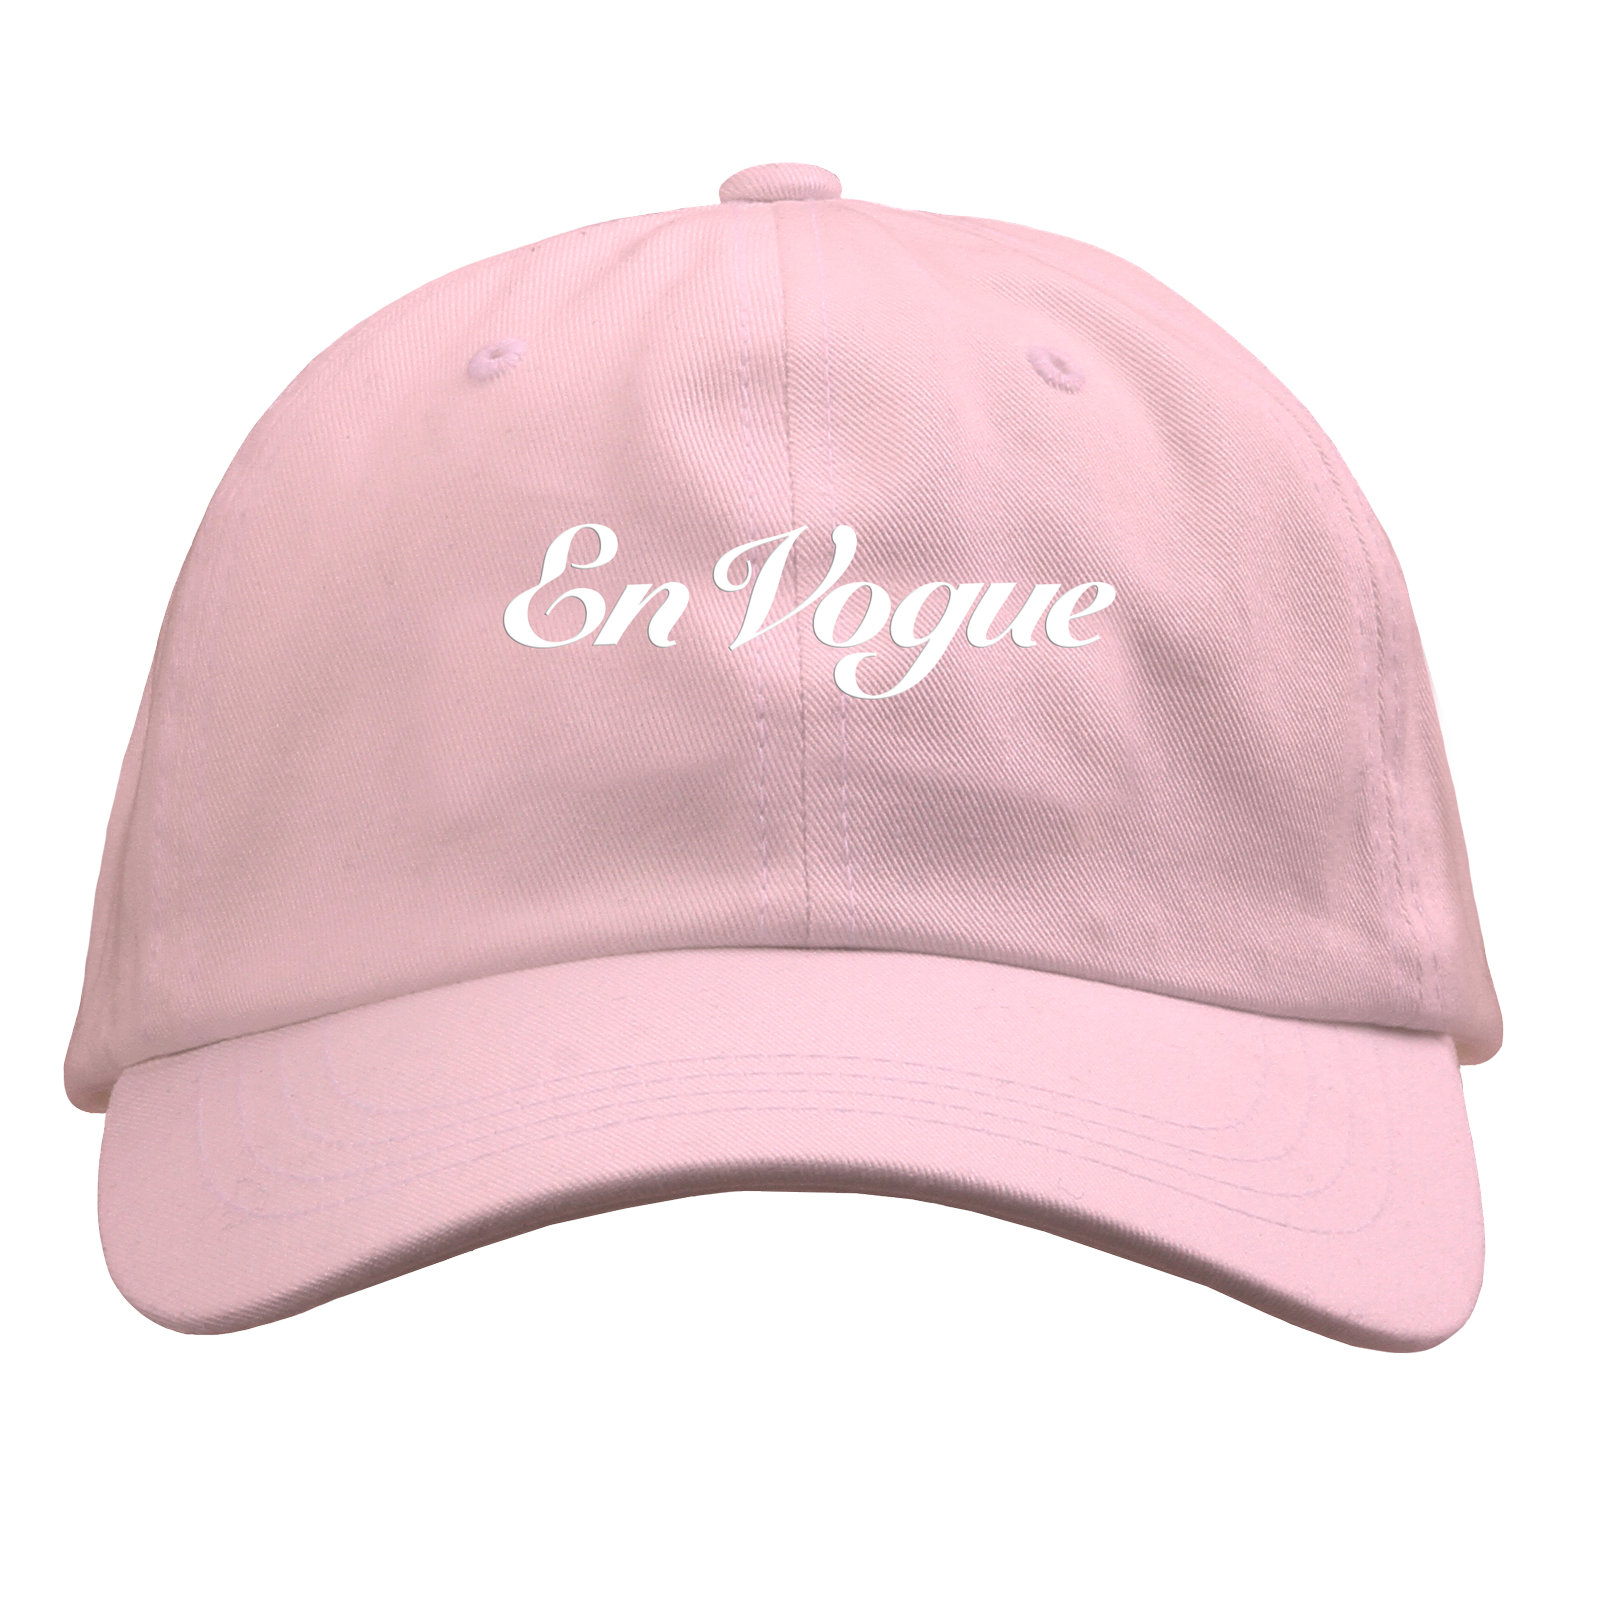 En Vogue Pink Dad Hat